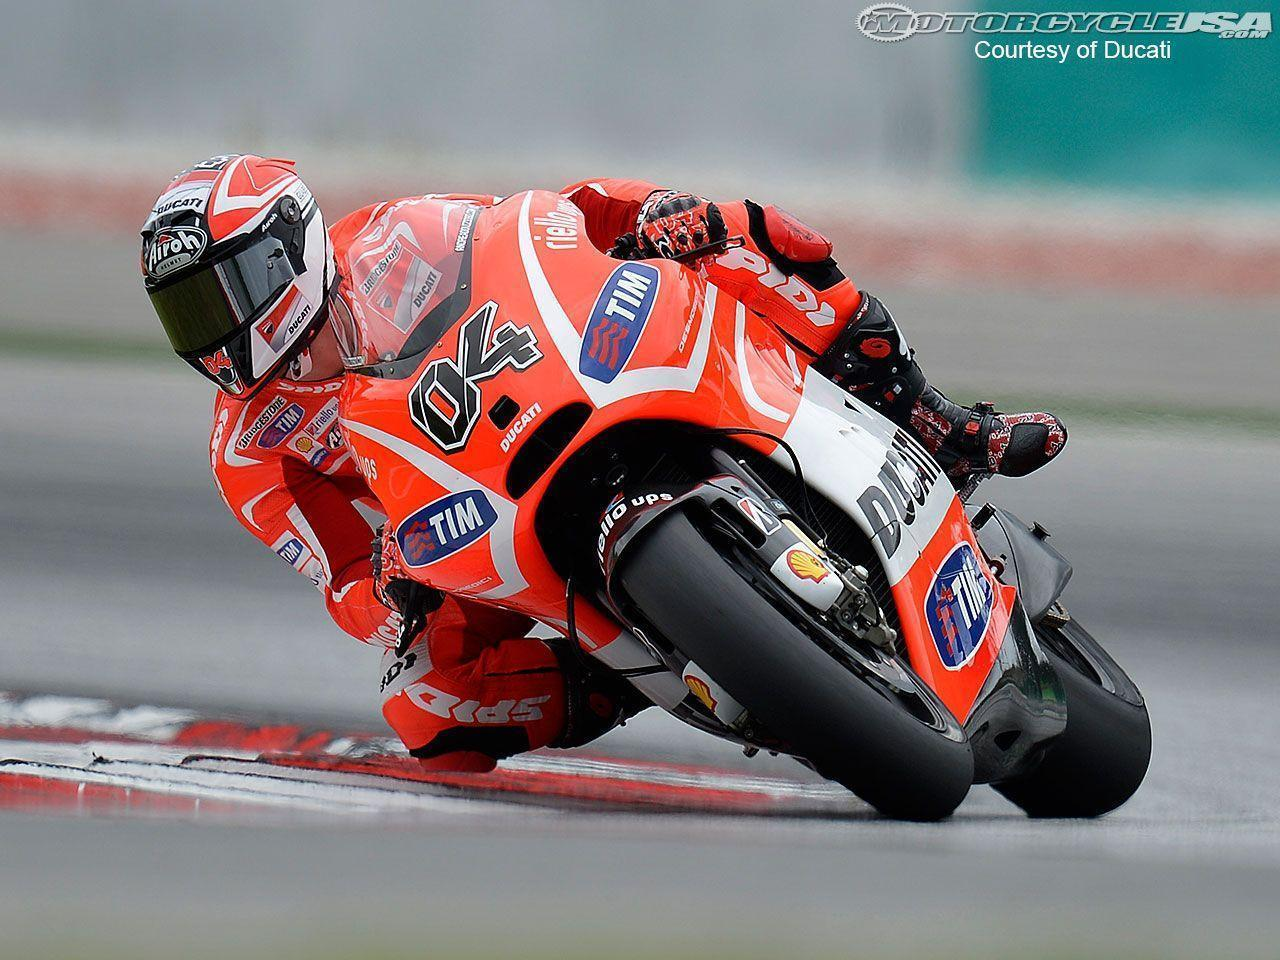 2013 MotoGP Season Photos